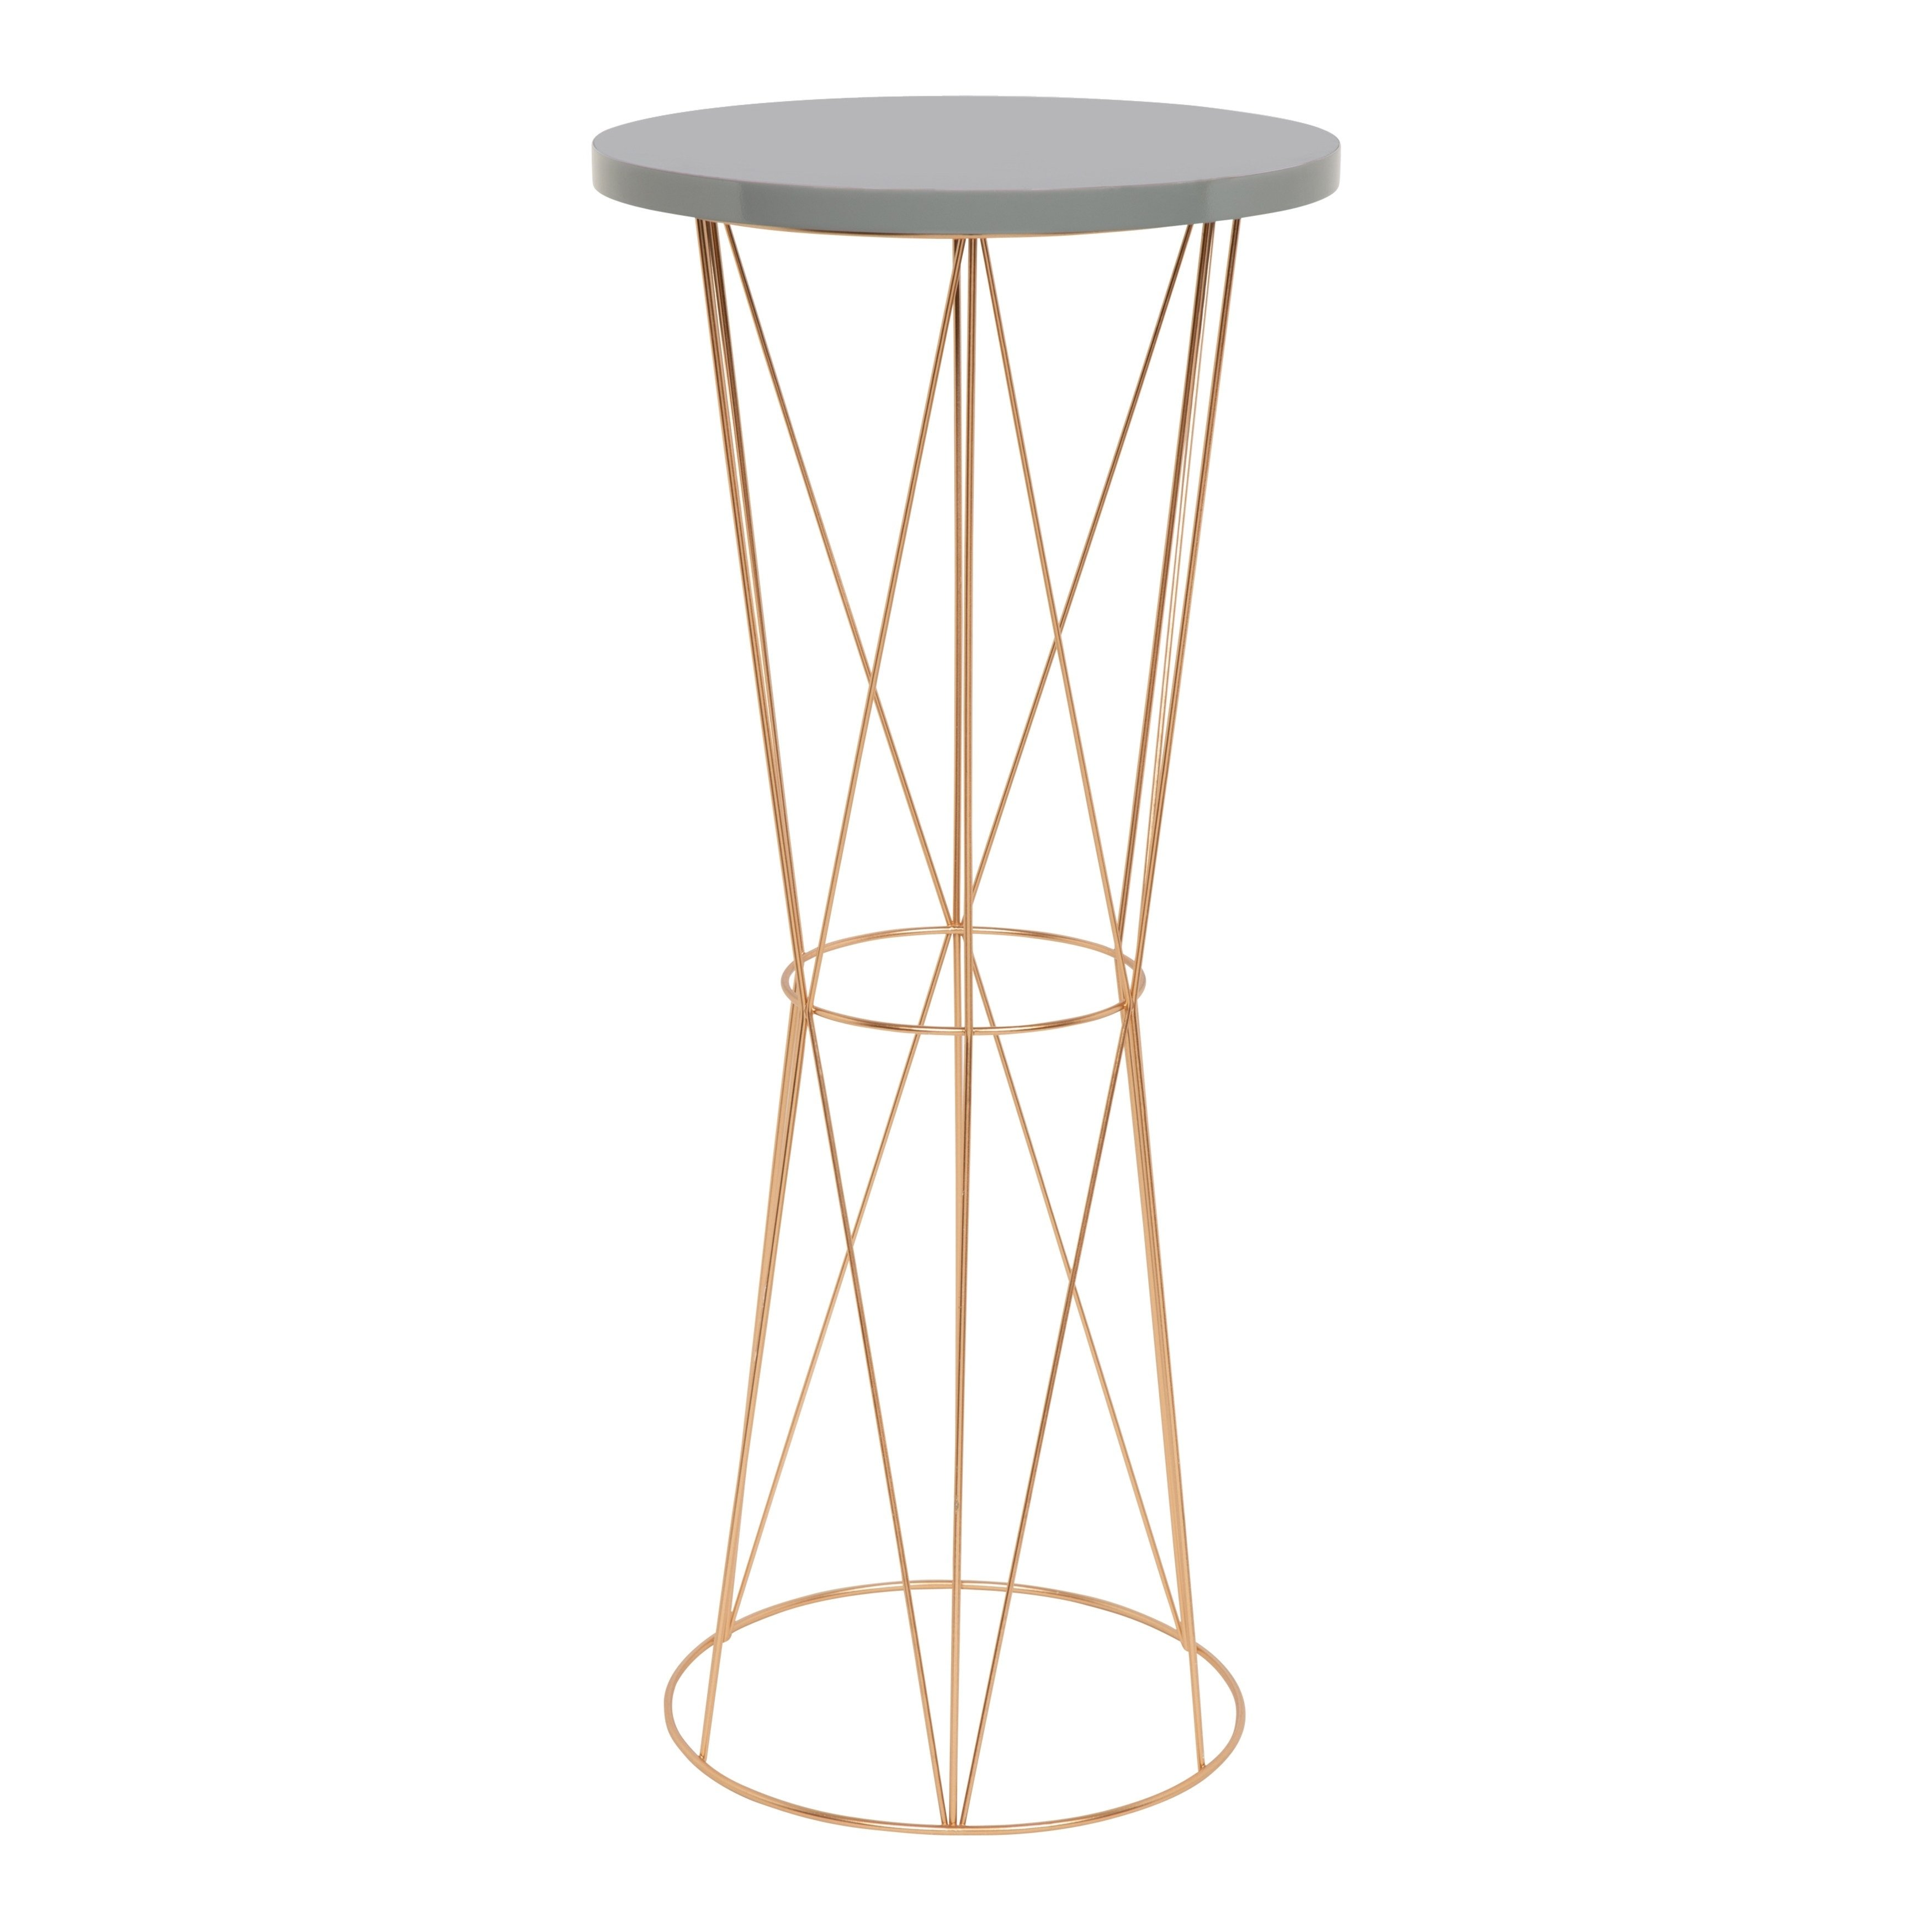 kate and laurel mendel round metal accent table wood reading lamp coffee tables marble granite inch runner ethan allen chairs bistro umbrella little bunnings outdoor seating